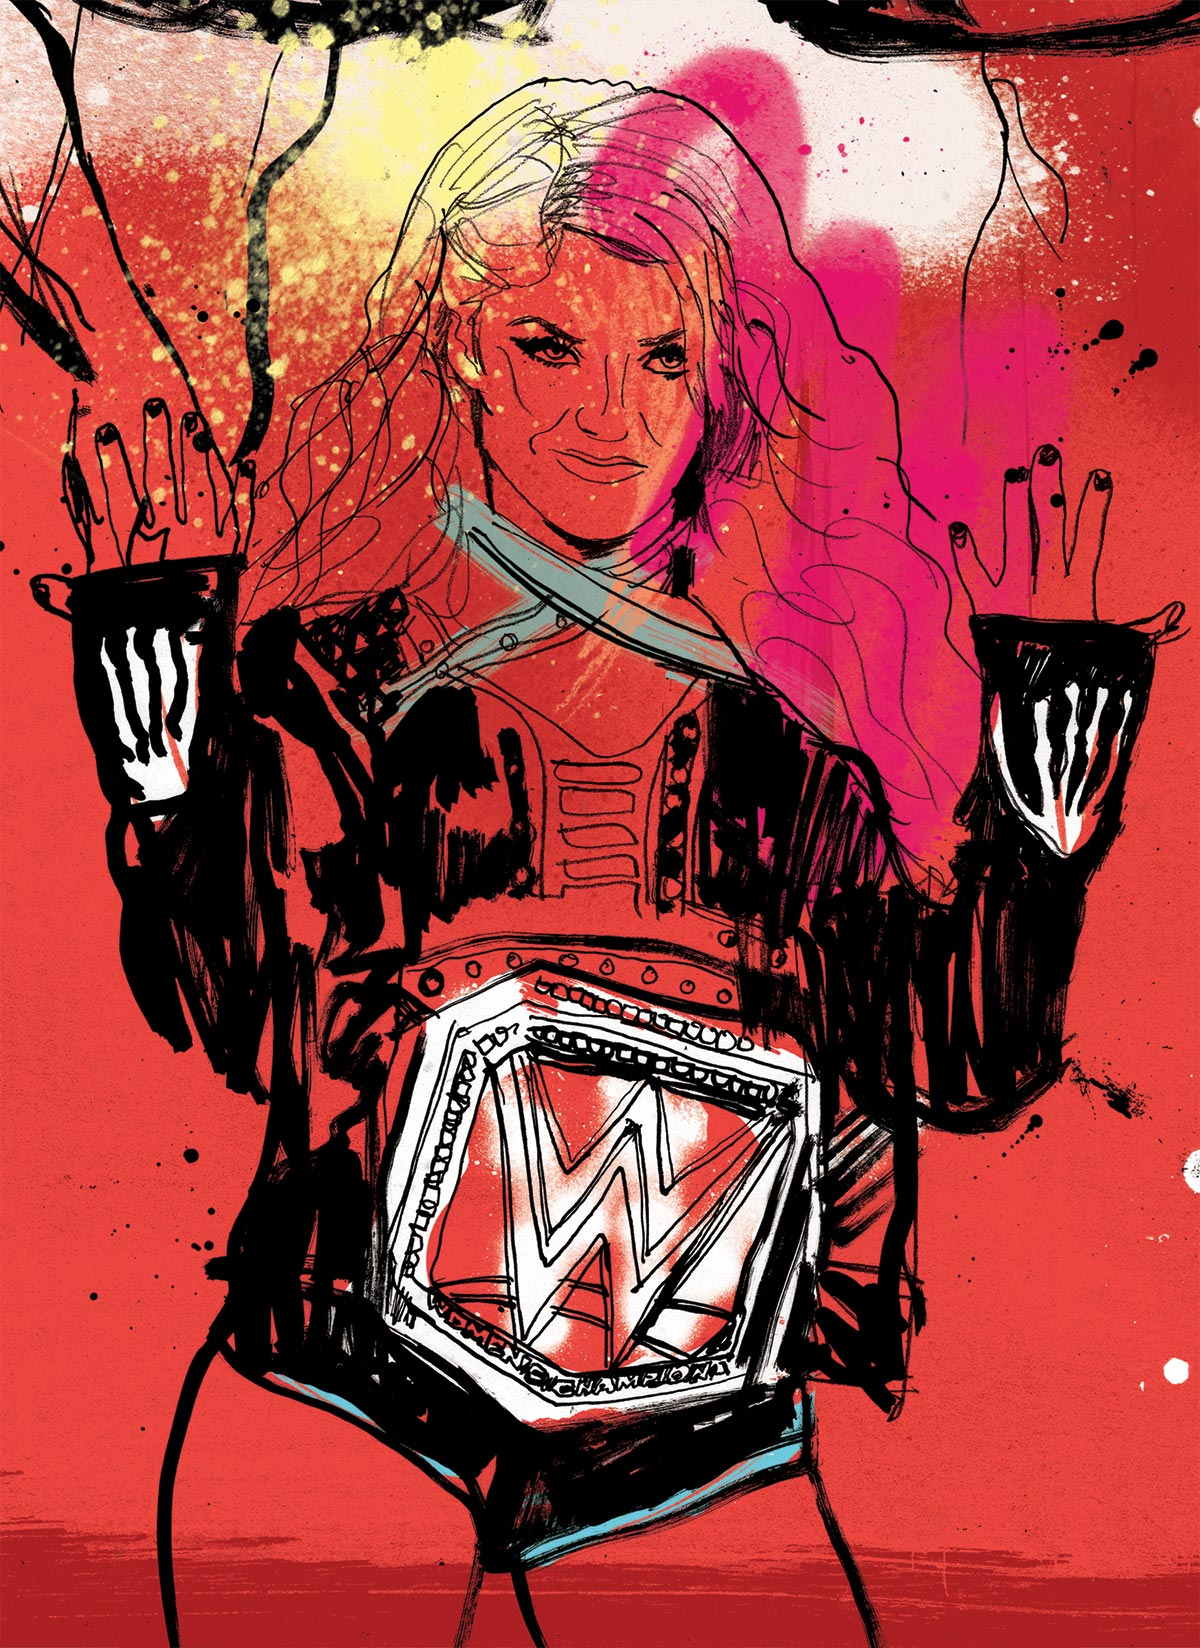 WWE artist artwork illustration for Raw magazine cover design. Hand painted, hand drawn by illustrator Ben Tallon